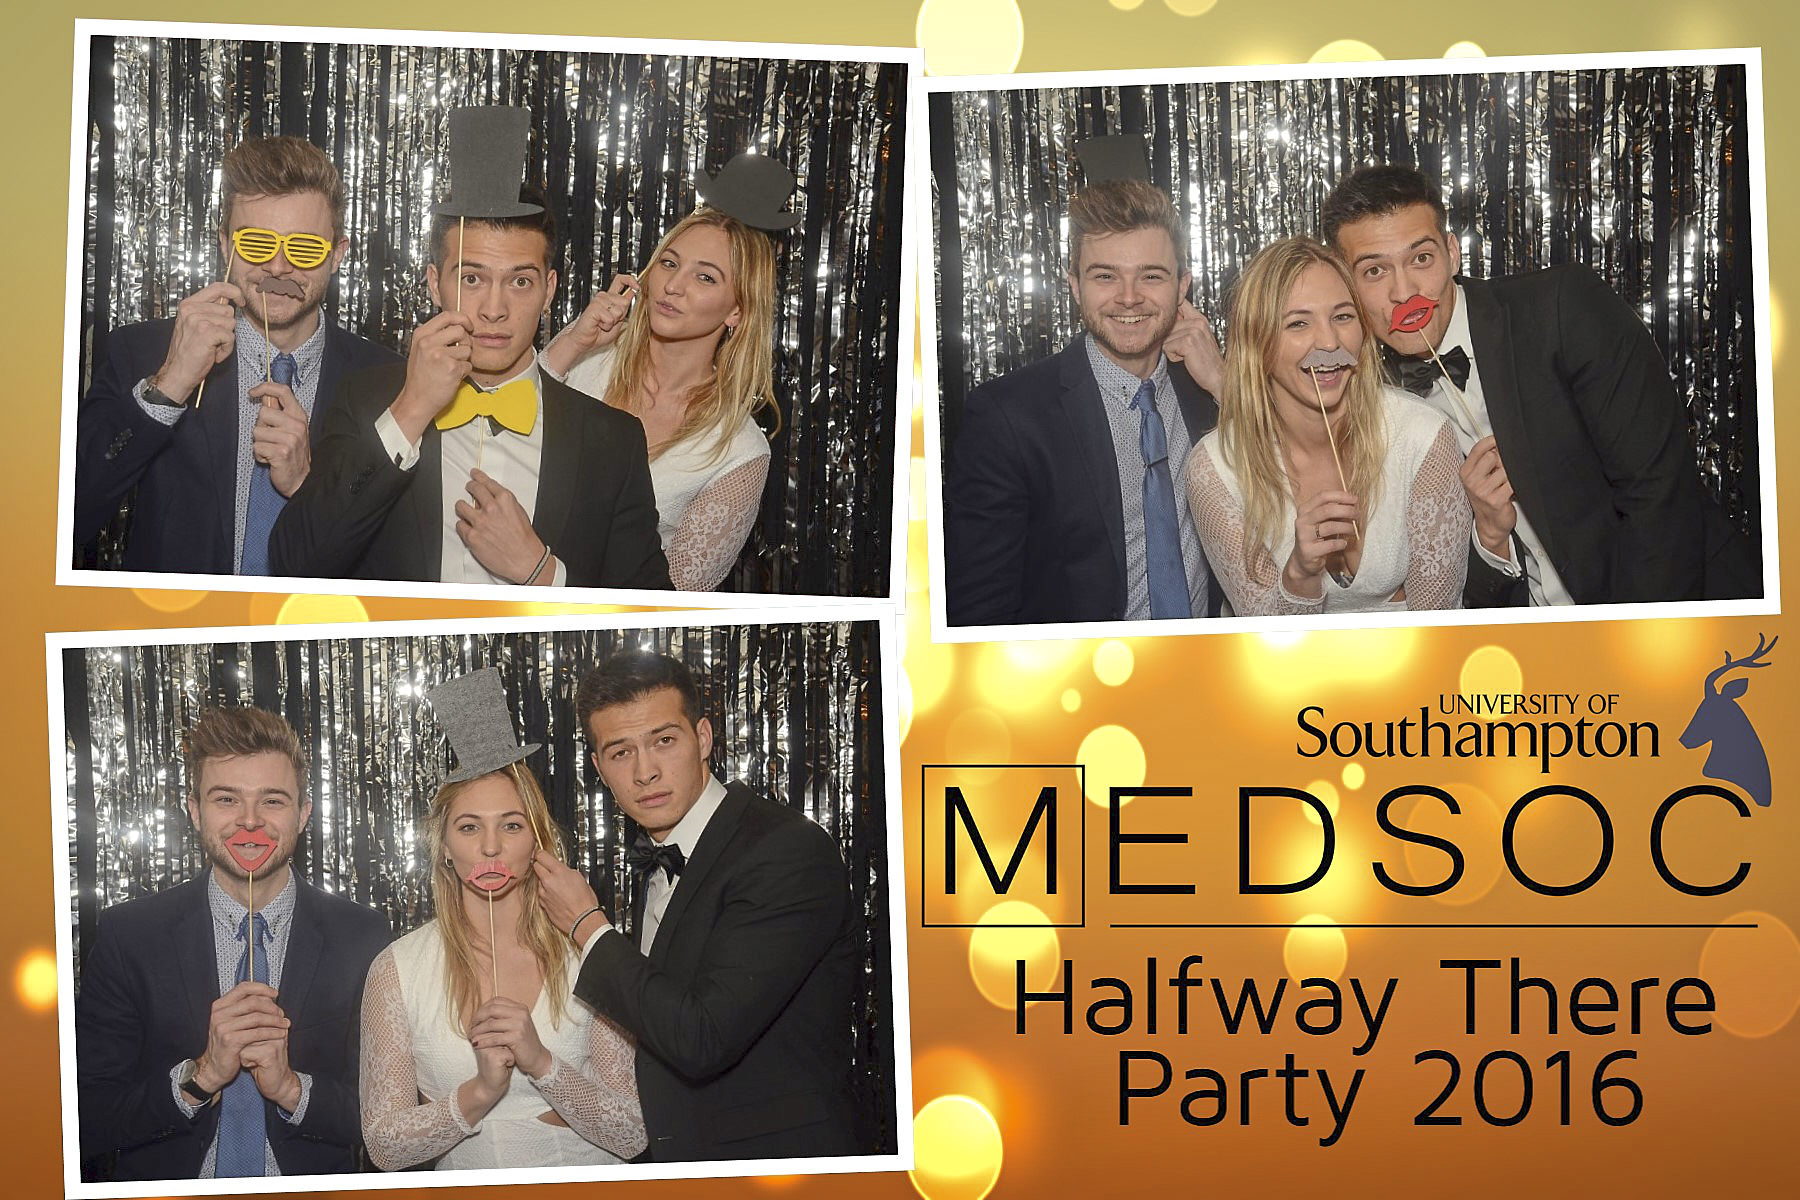 MedSoc Halfway There Party 2016 DS203330.jpg